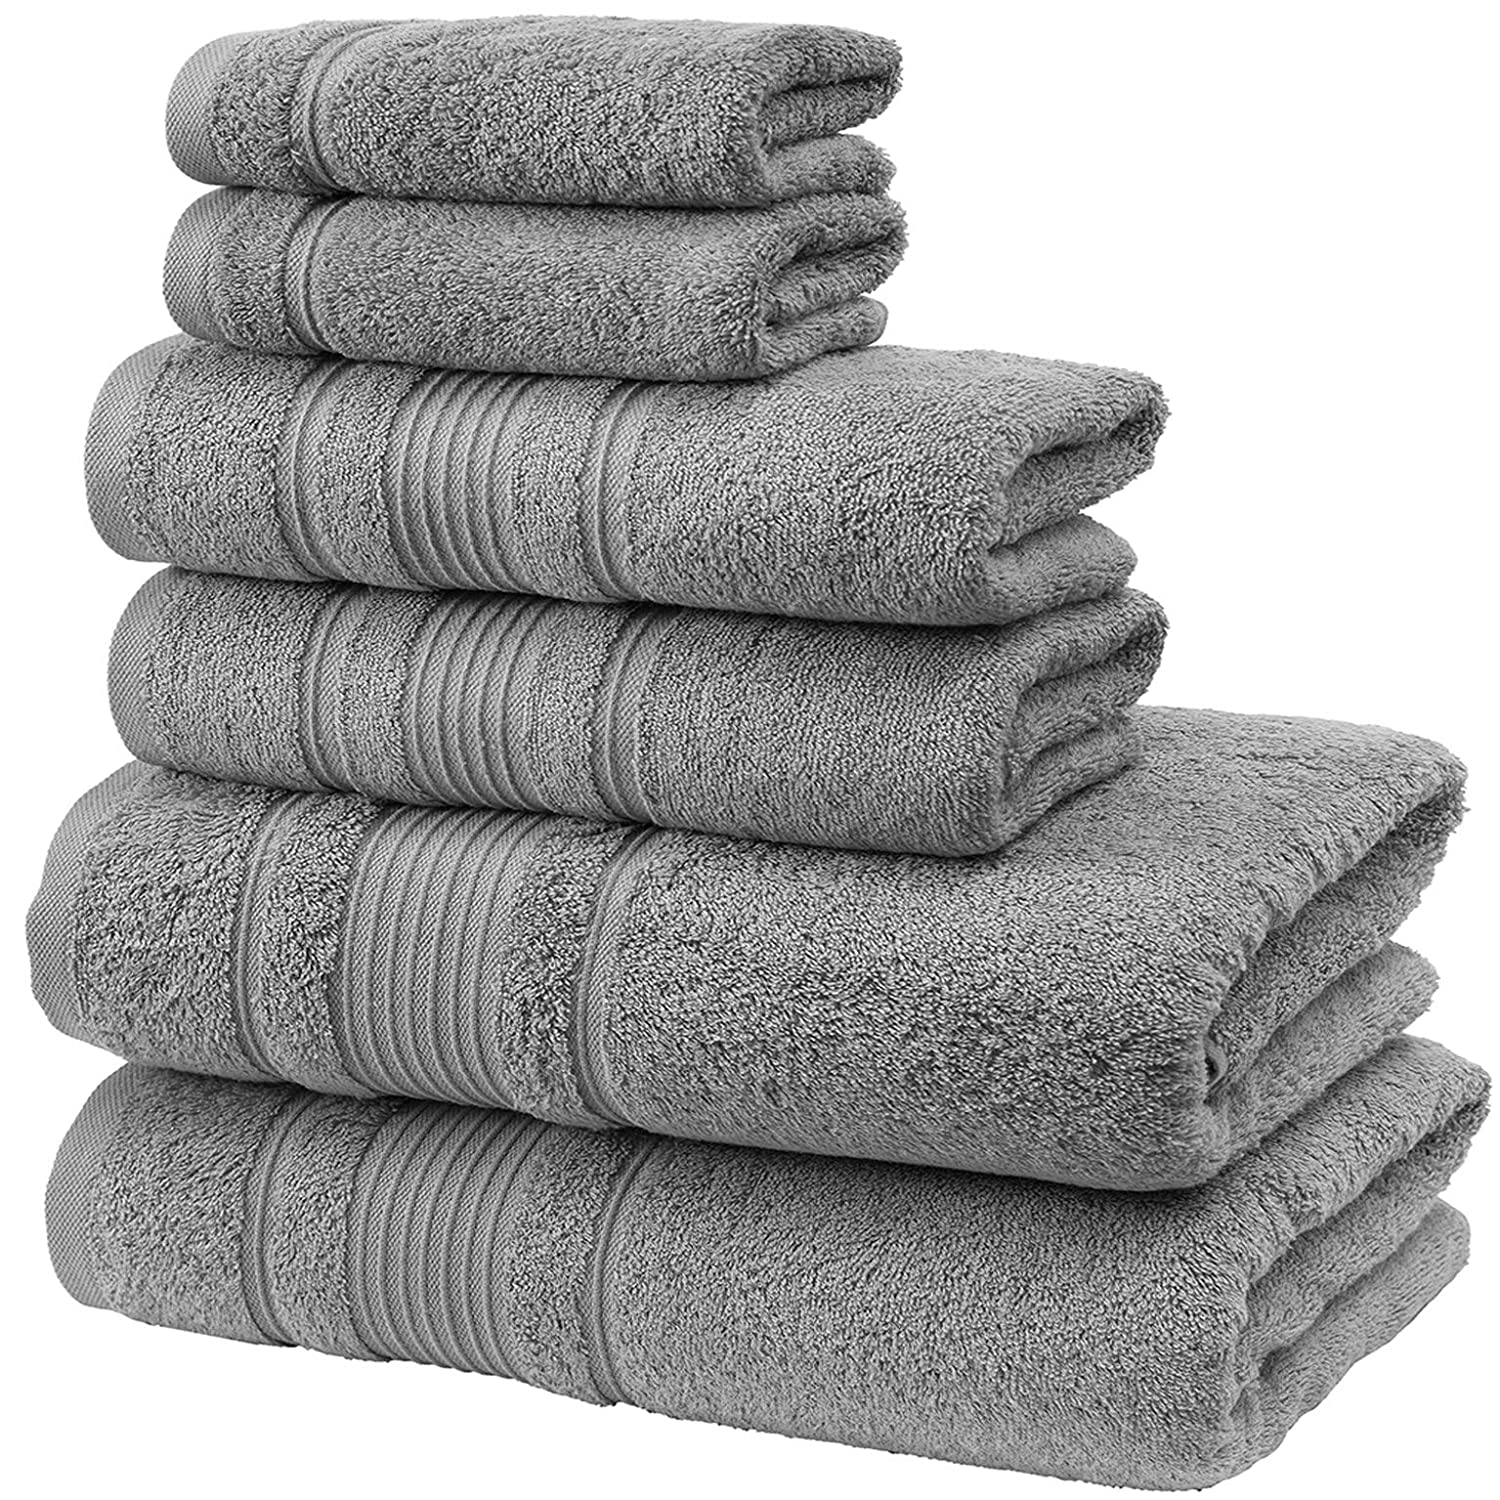 Qute Home Spa & Hotel Towels 6 Piece Towel Set, 2 Bath Towels, 2 Hand Towels, and 2 Washcloths - Grey